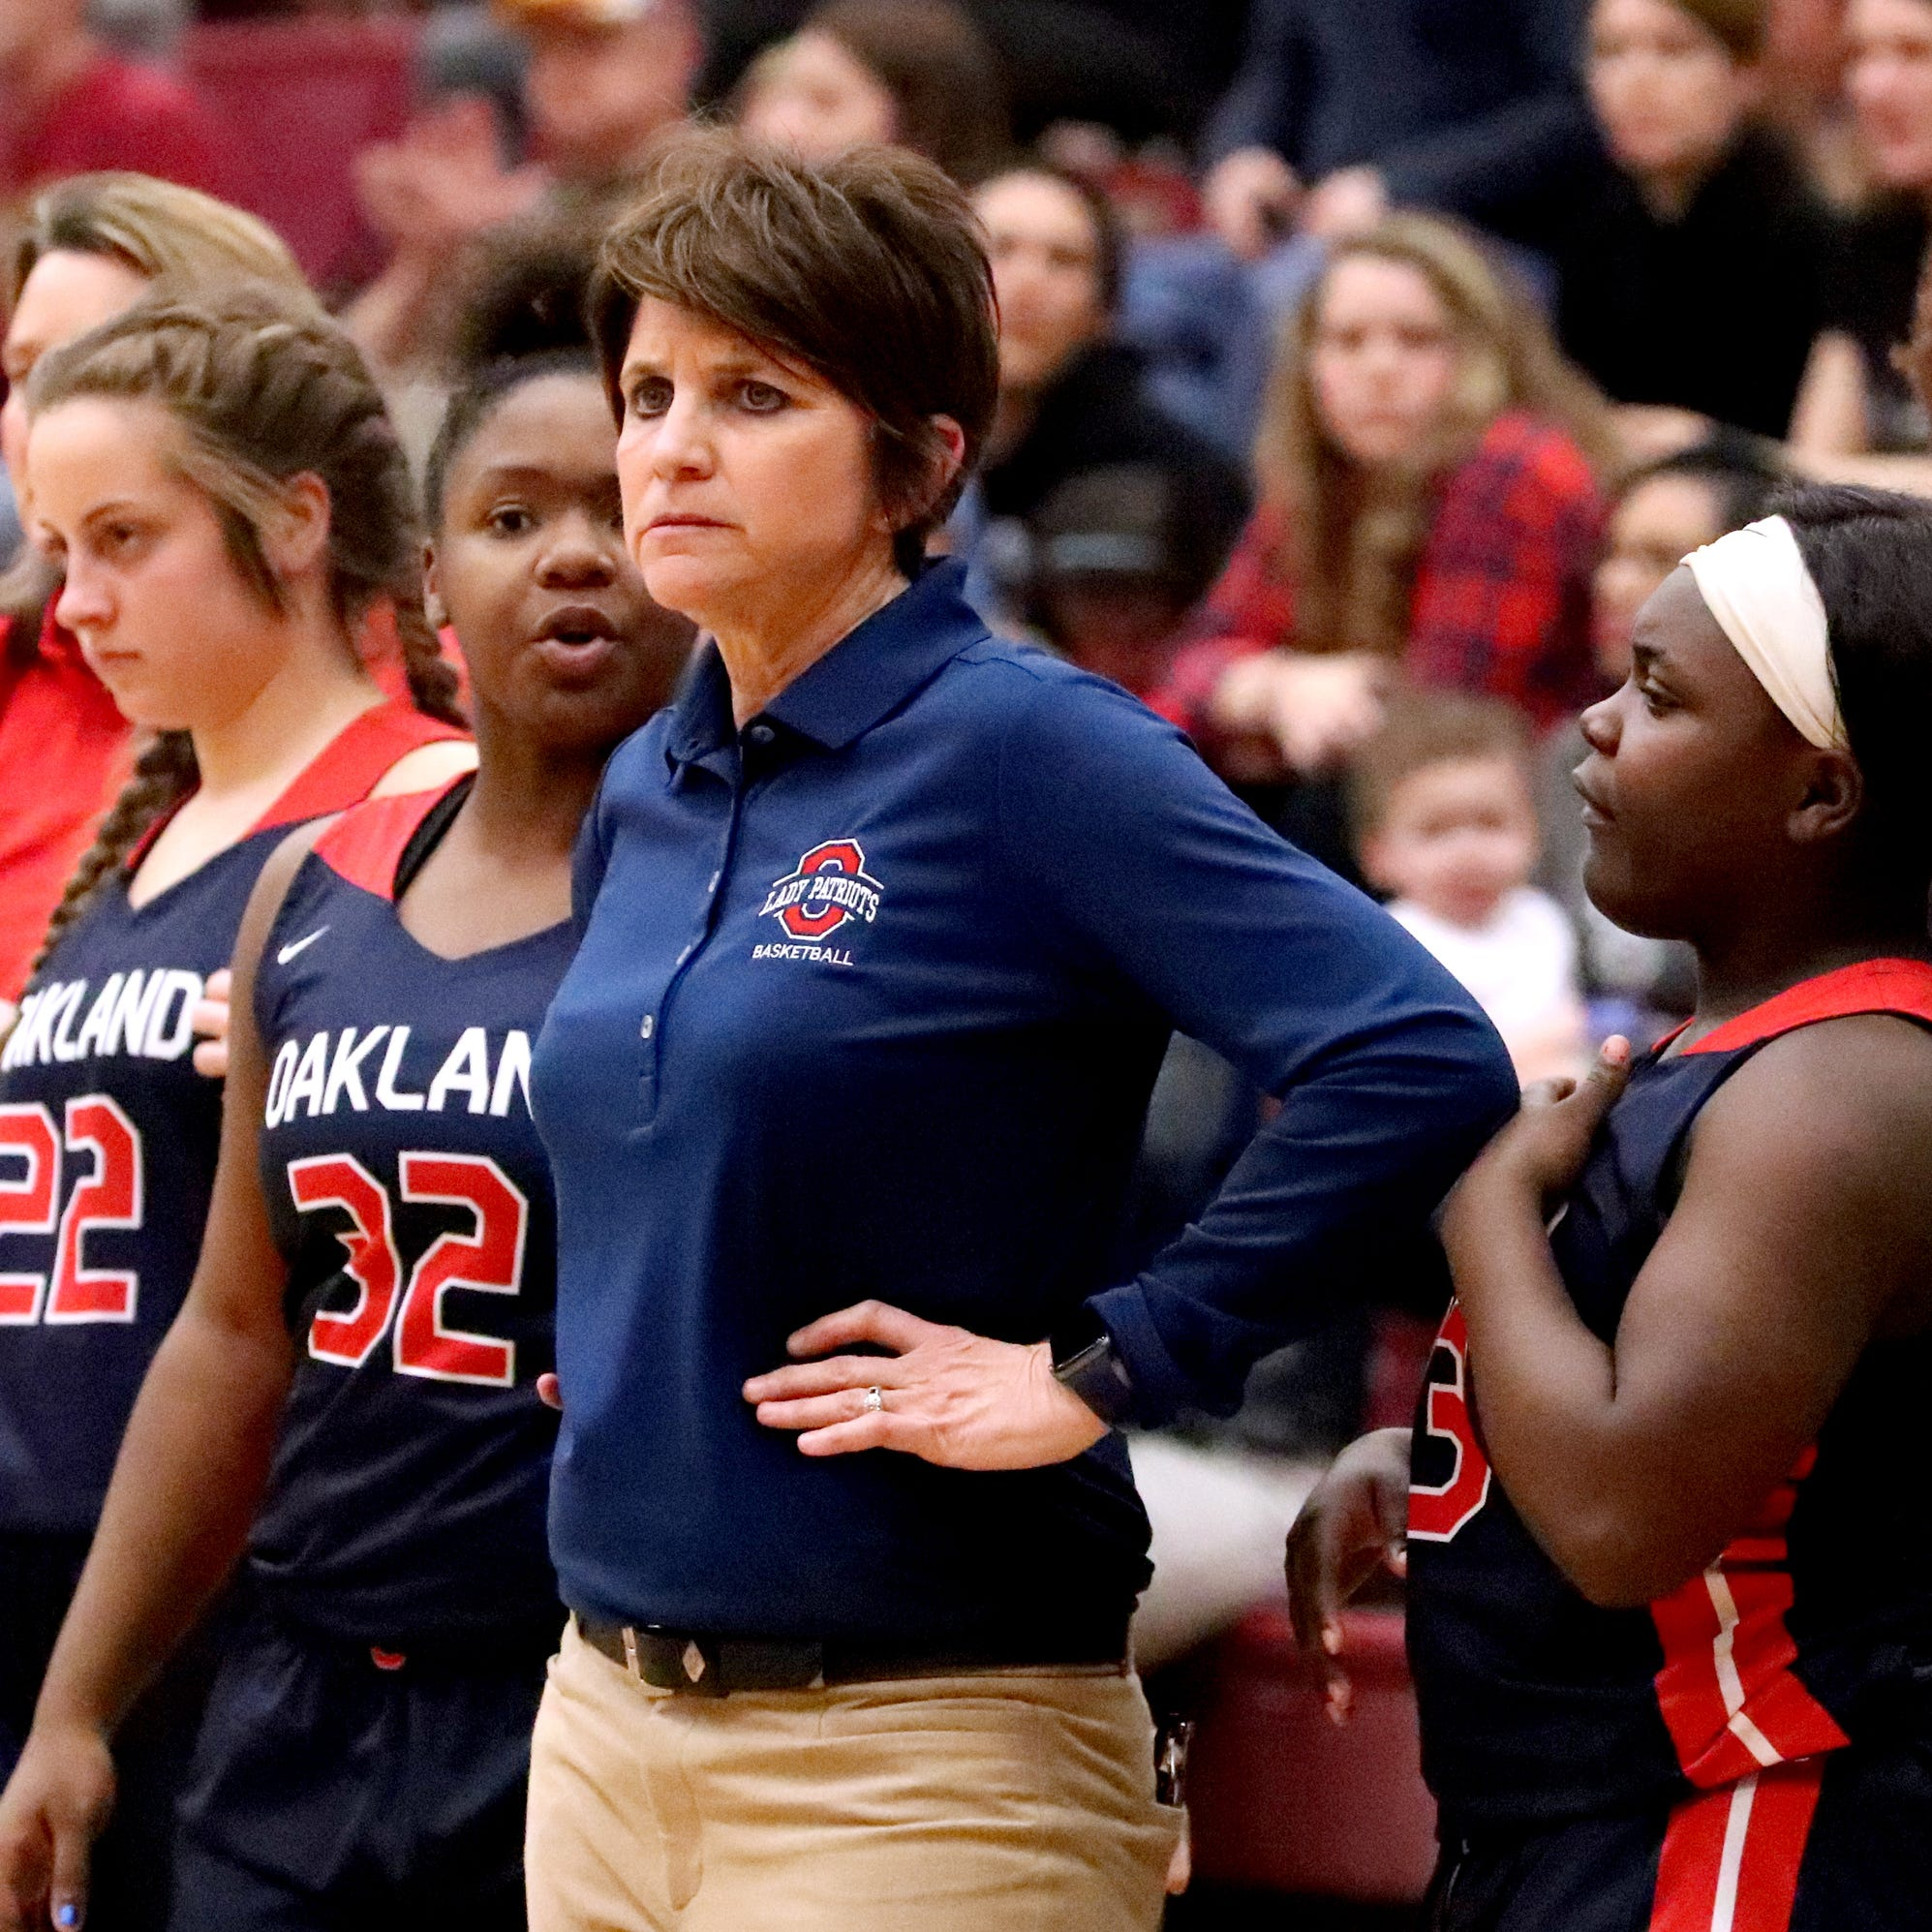 Longtime Oakland girls basketball coach Jennifer Grandstaff retires